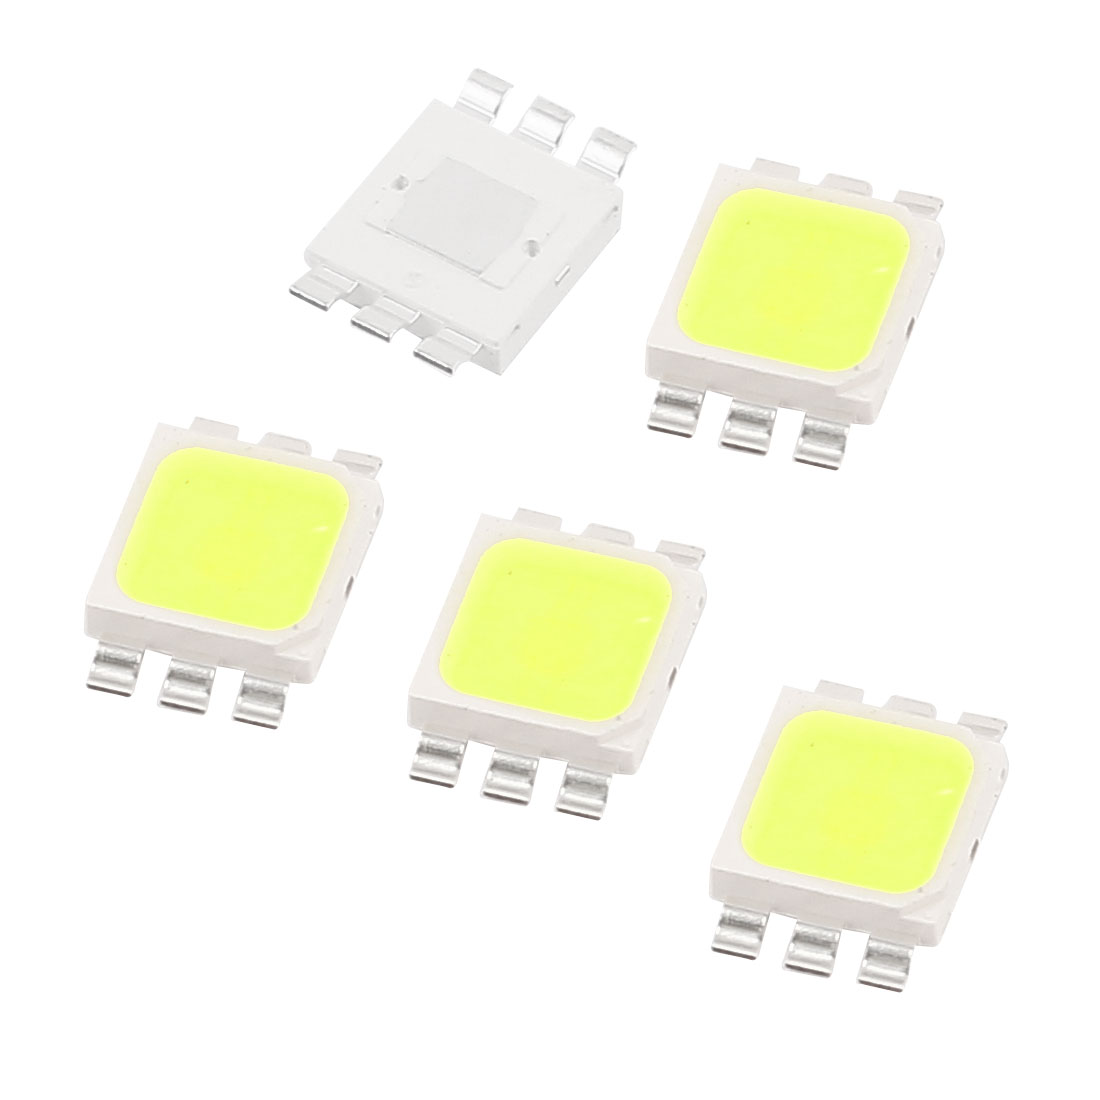 3.0-3.6V 350mA 1W Pure White High Power LED Bead SMD 5050 Chip Lamp Light 5pcs